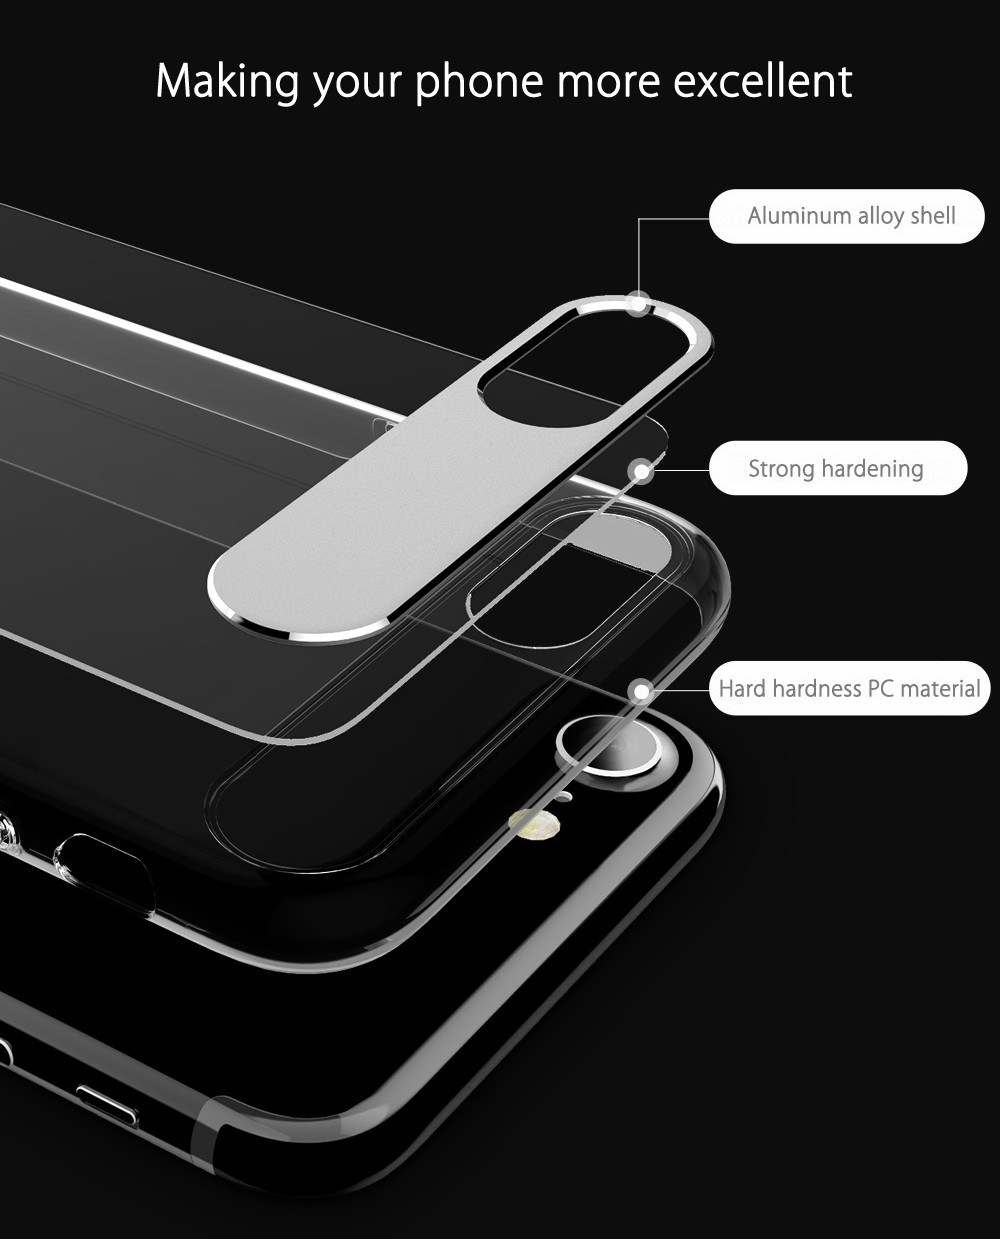 Mcdodo PC - 358 Sharp Series Ultra Thin Aluminum Alloy + PC Cover Case for iPhone 7 Plus